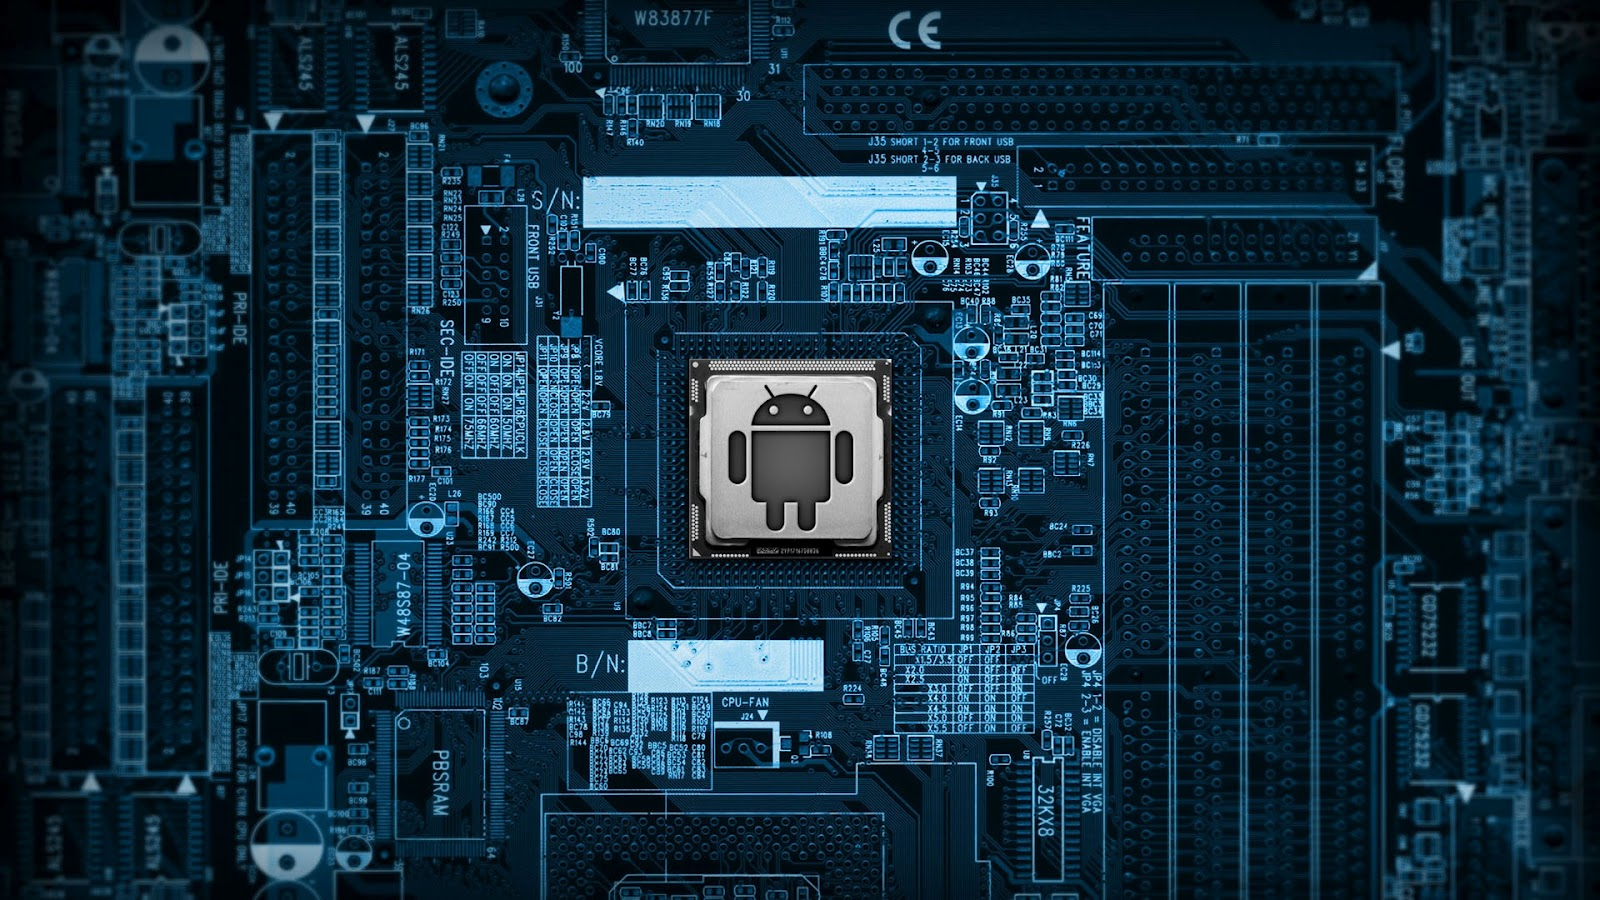 Live Android Tablet Chip Wallpapers 1600x900